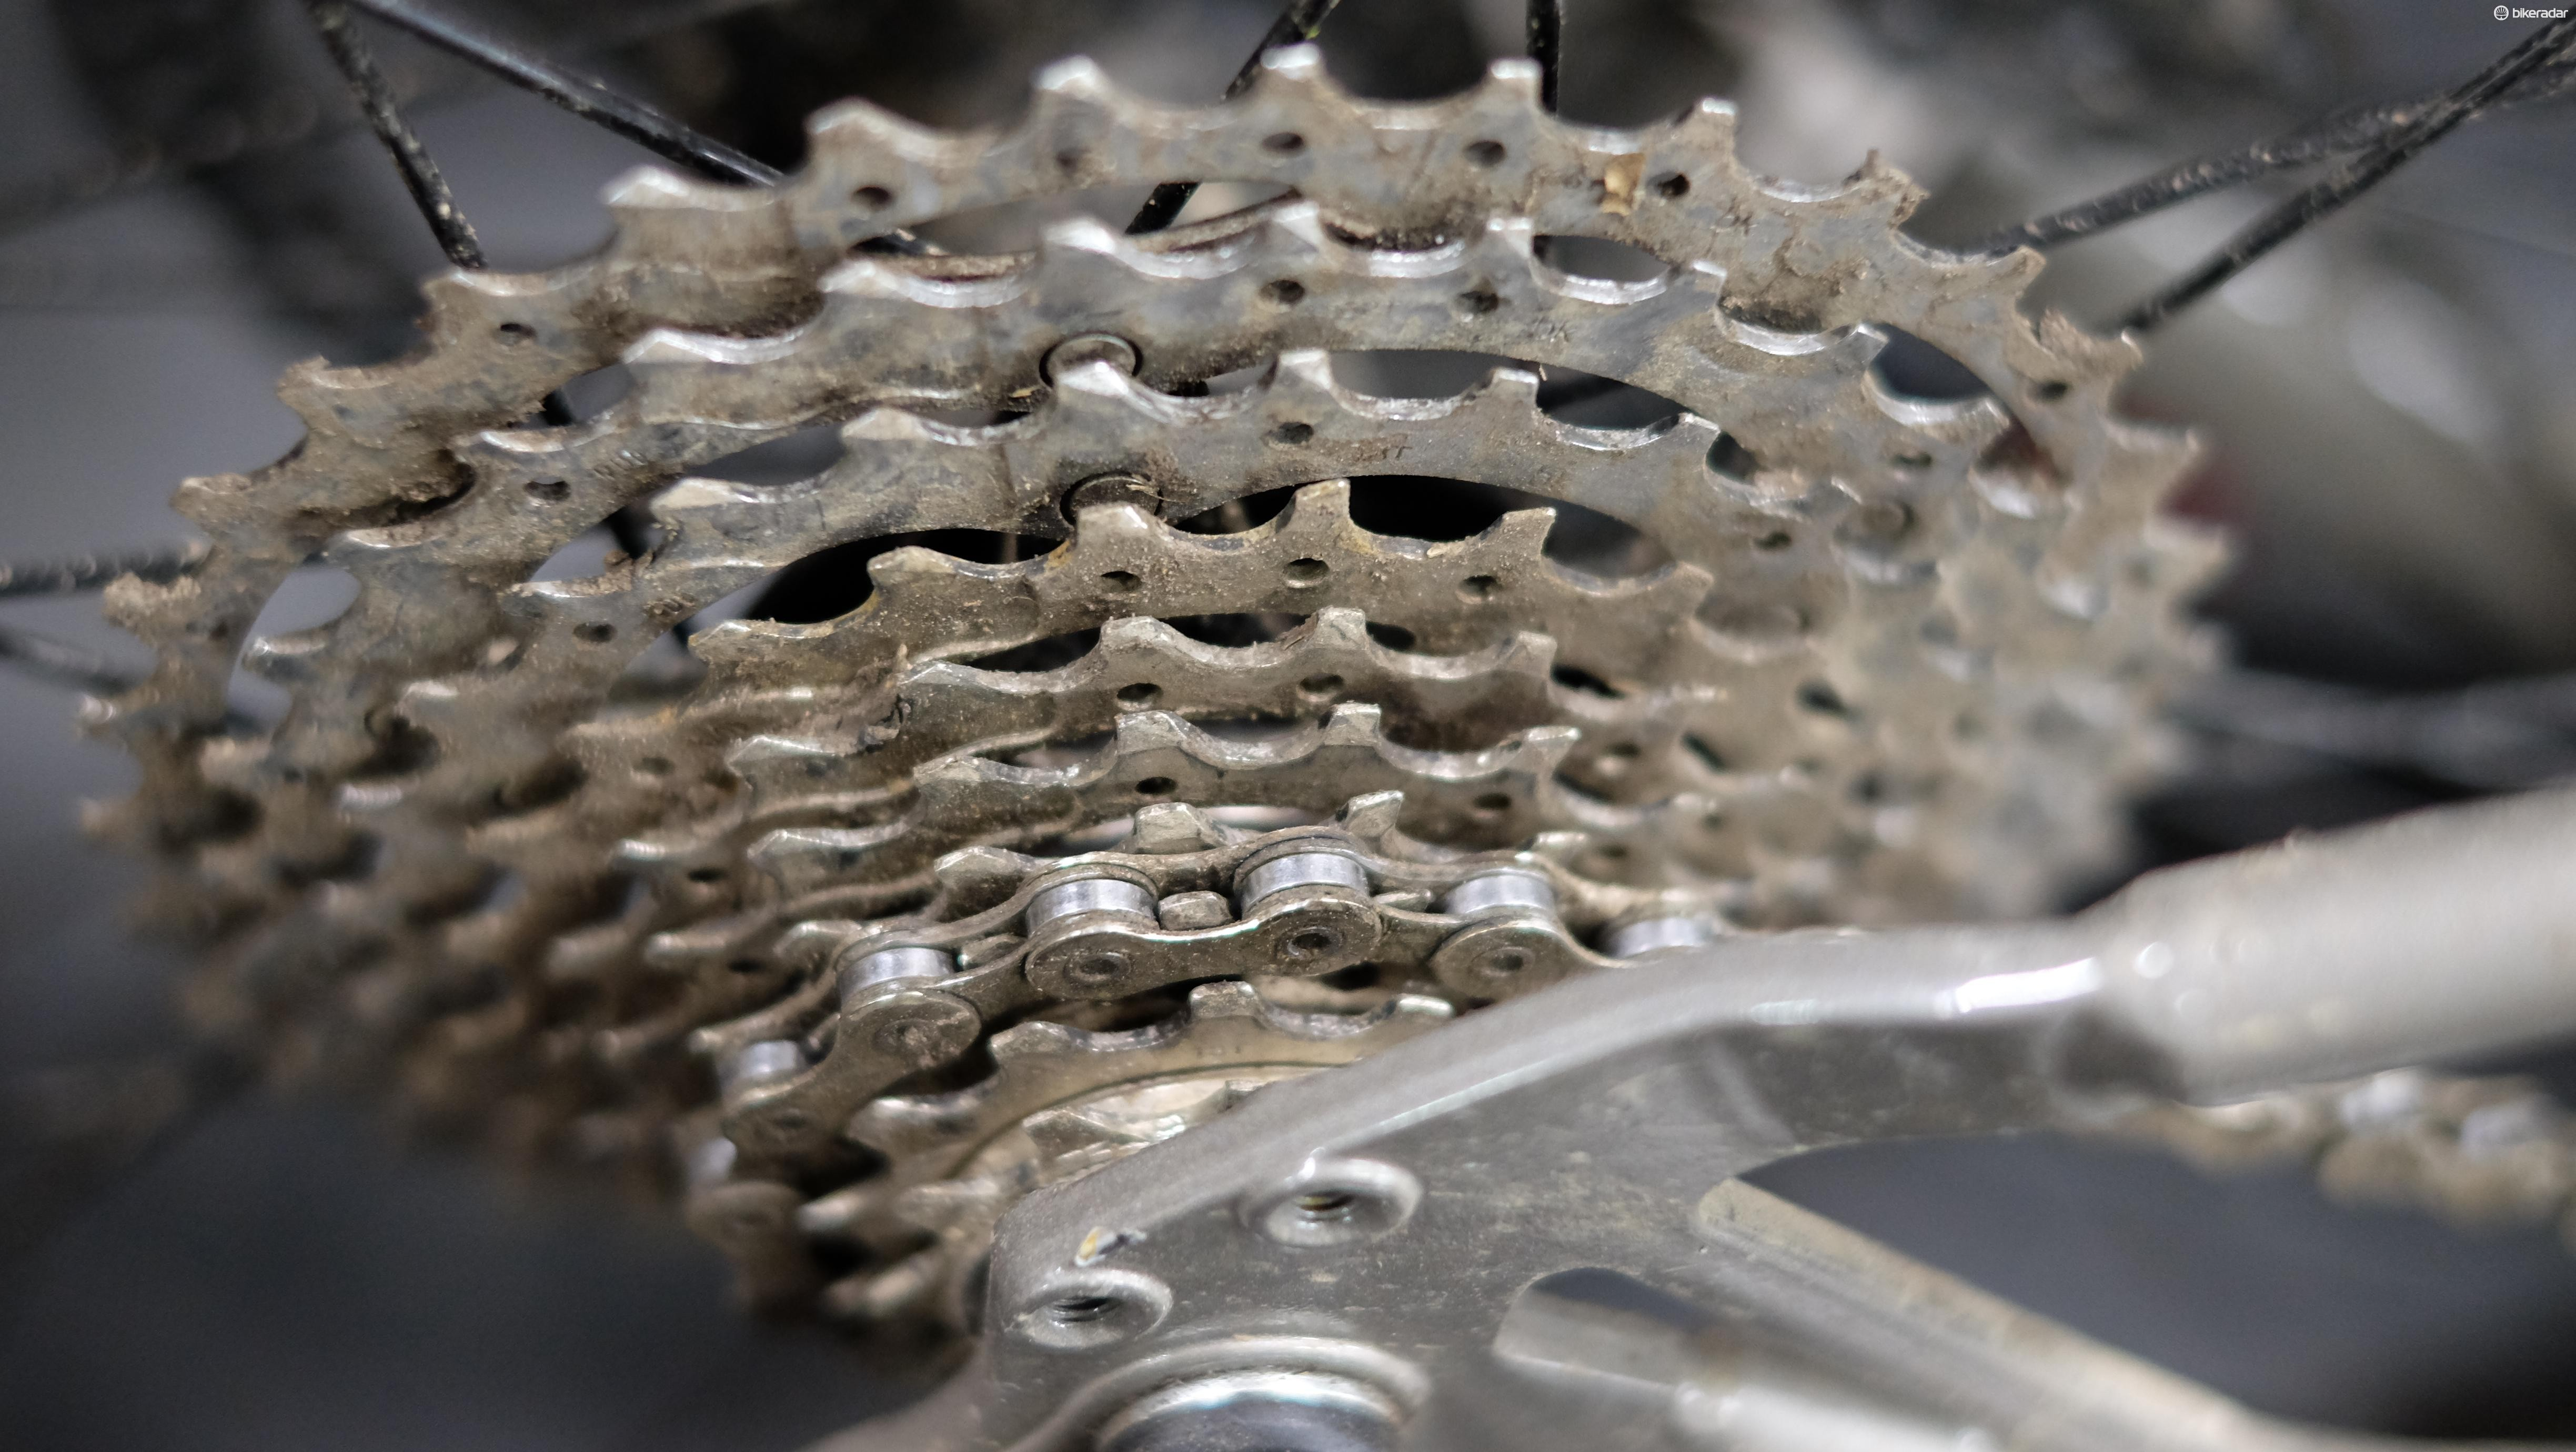 A dry chain will rob you of efficiency and will damage your bike's expensive drivetrain components